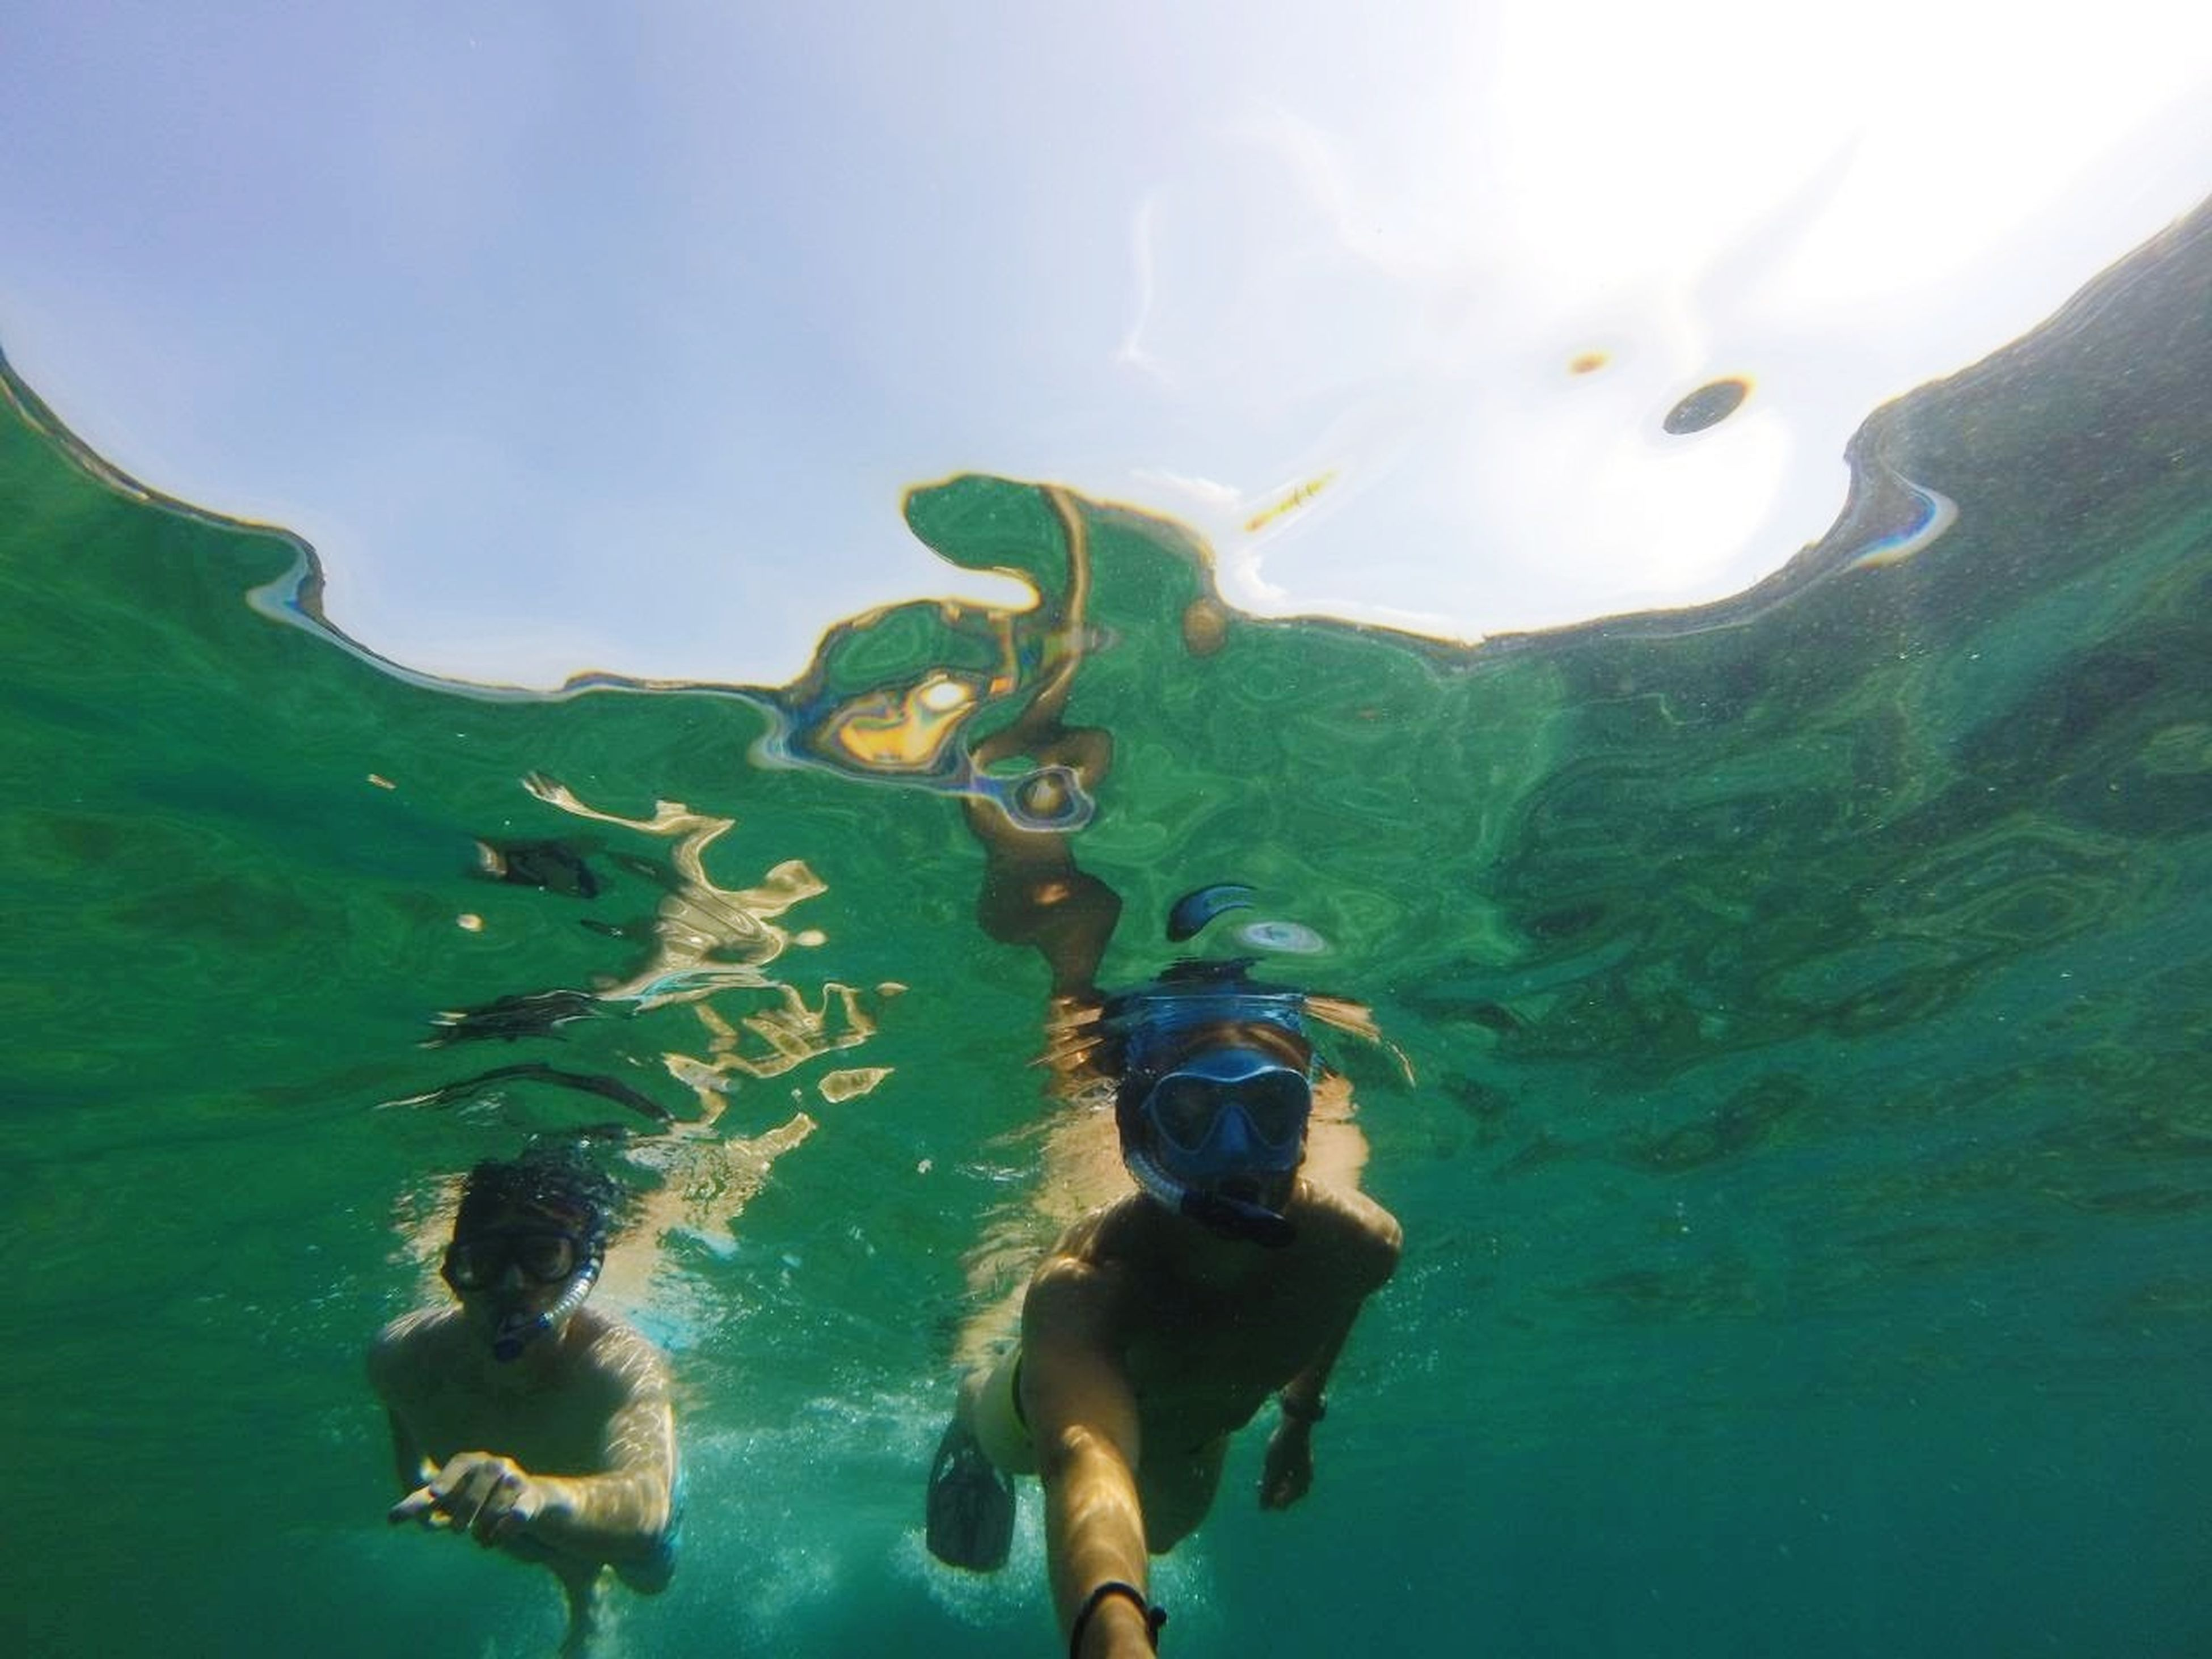 swimming, adventure, water, sea, day, leisure activity, underwater, snorkeling, nature, real people, undersea, outdoors, full length, beauty in nature, one person, scuba diving, sky, young adult, people